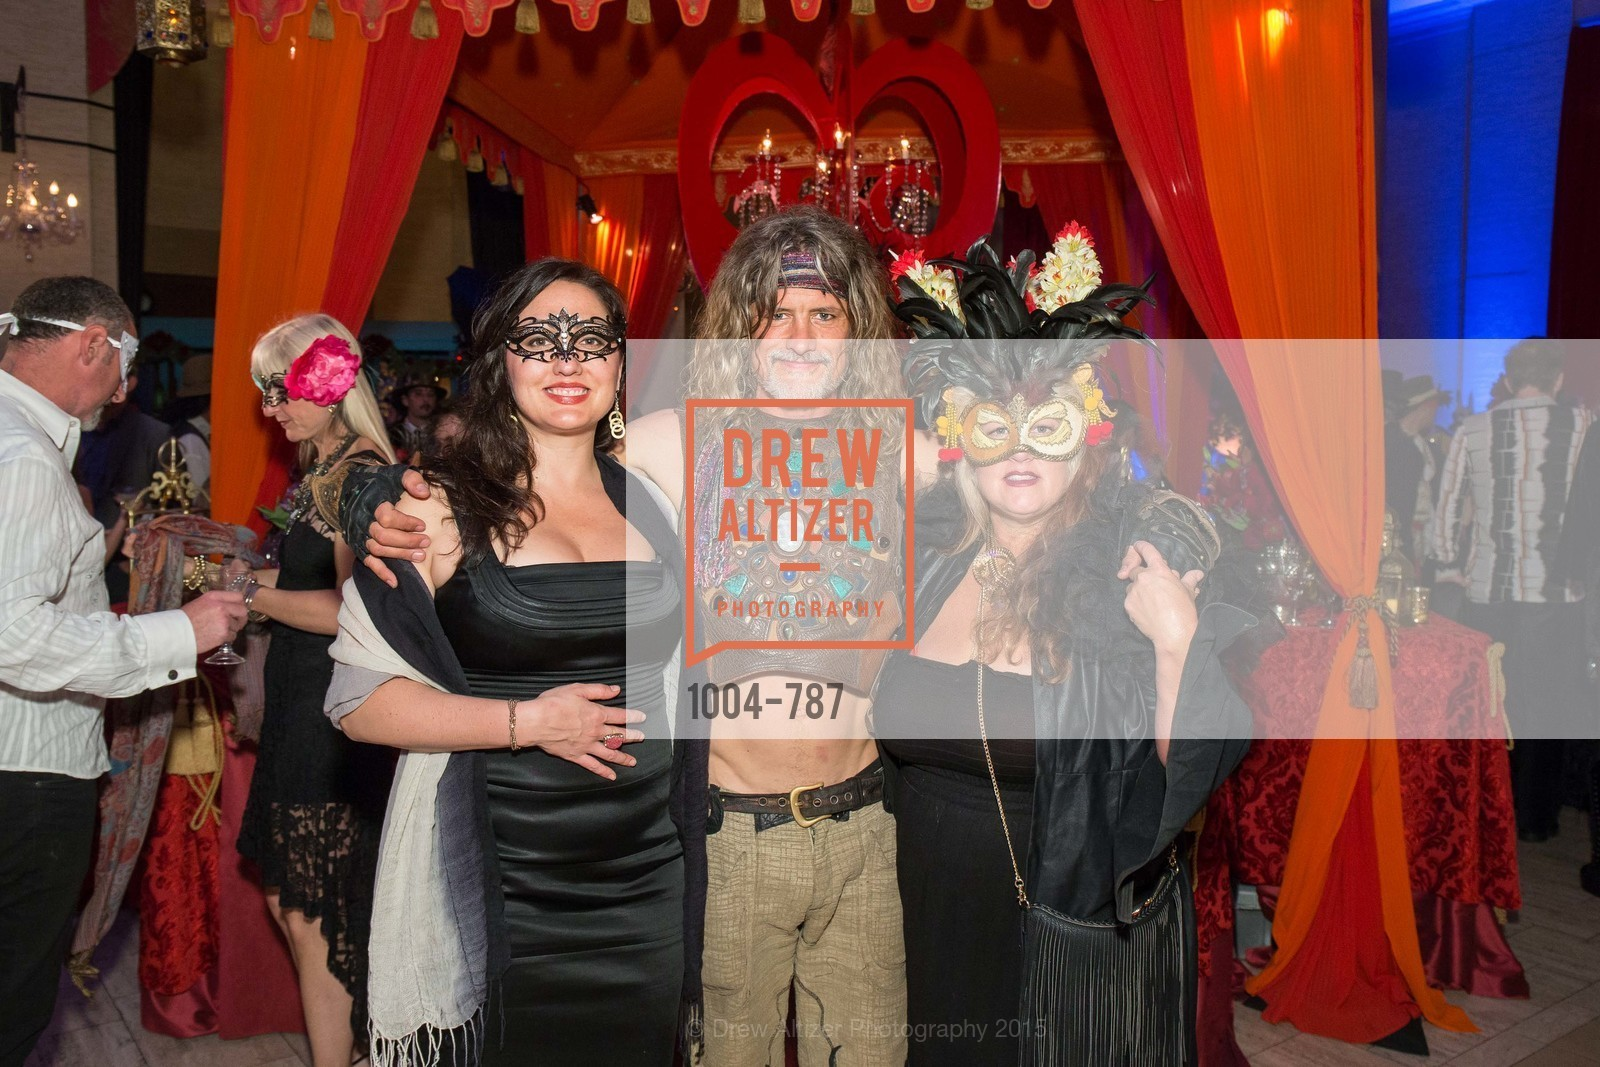 Charity Toode, Prashanti DeJager, Shakti Kennedy, Bently Engagement, US, April 13th, 2015,Drew Altizer, Drew Altizer Photography, full-service agency, private events, San Francisco photographer, photographer california